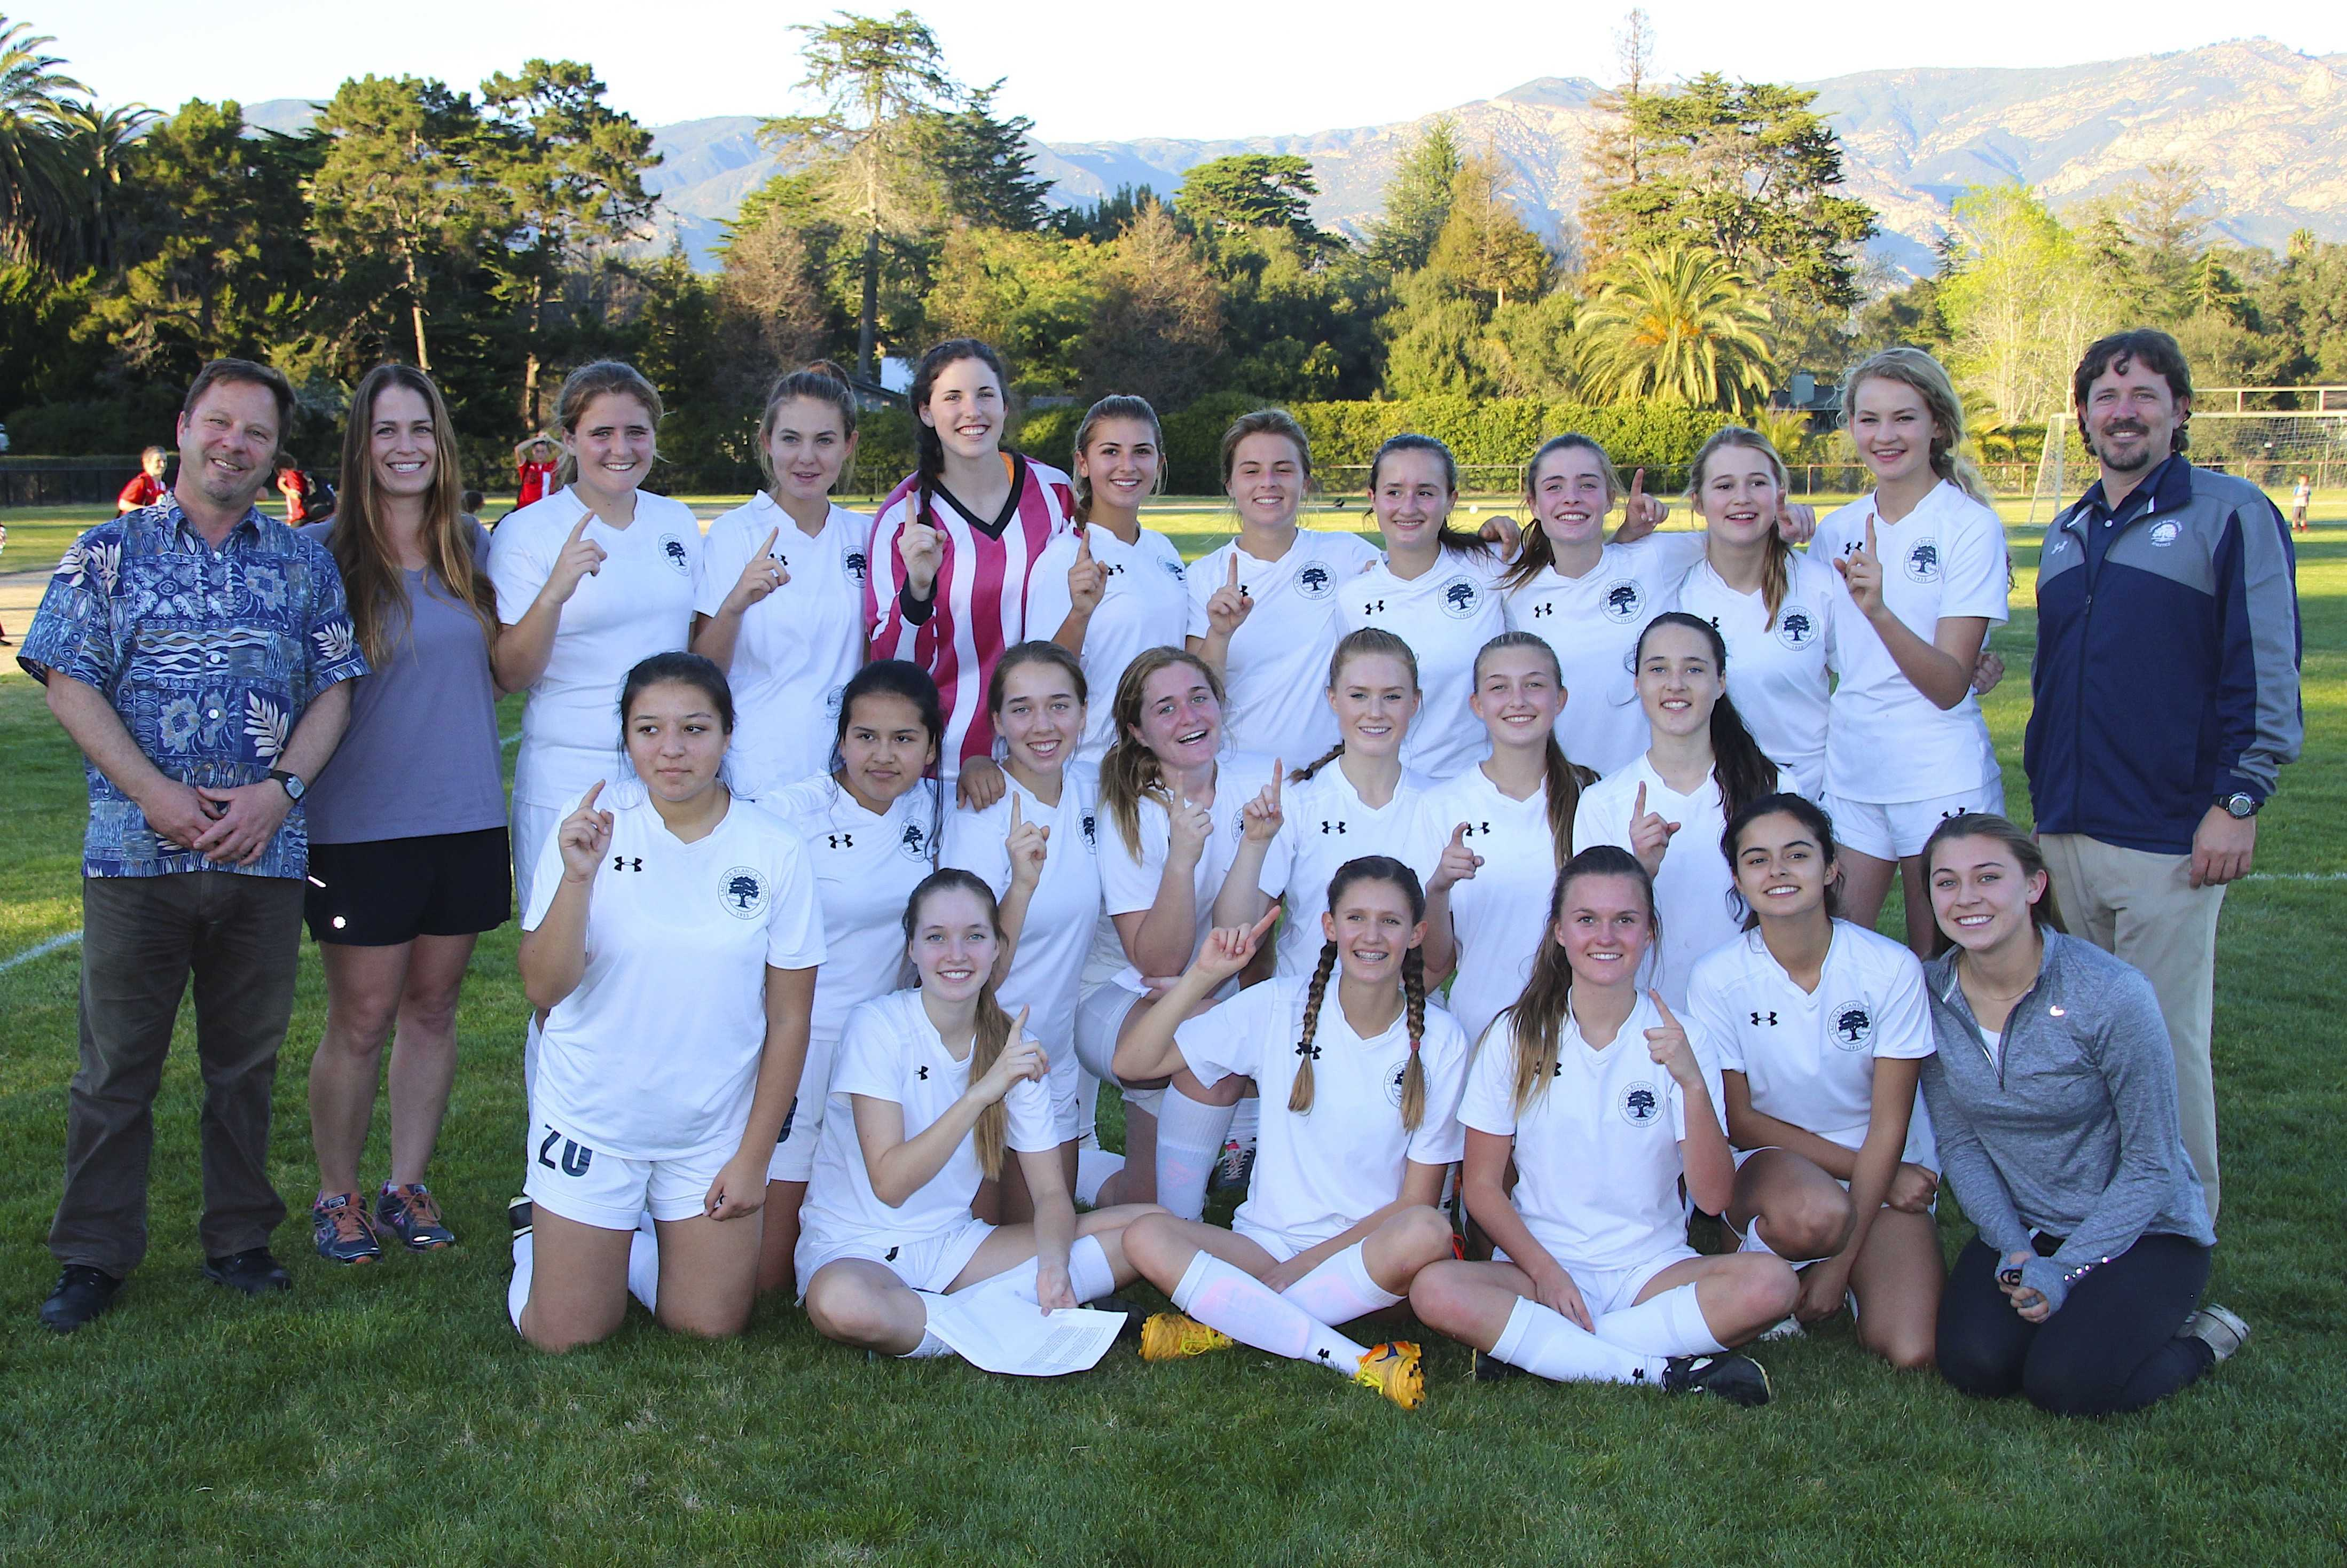 Girls Soccer Team Takes the Condor League Title